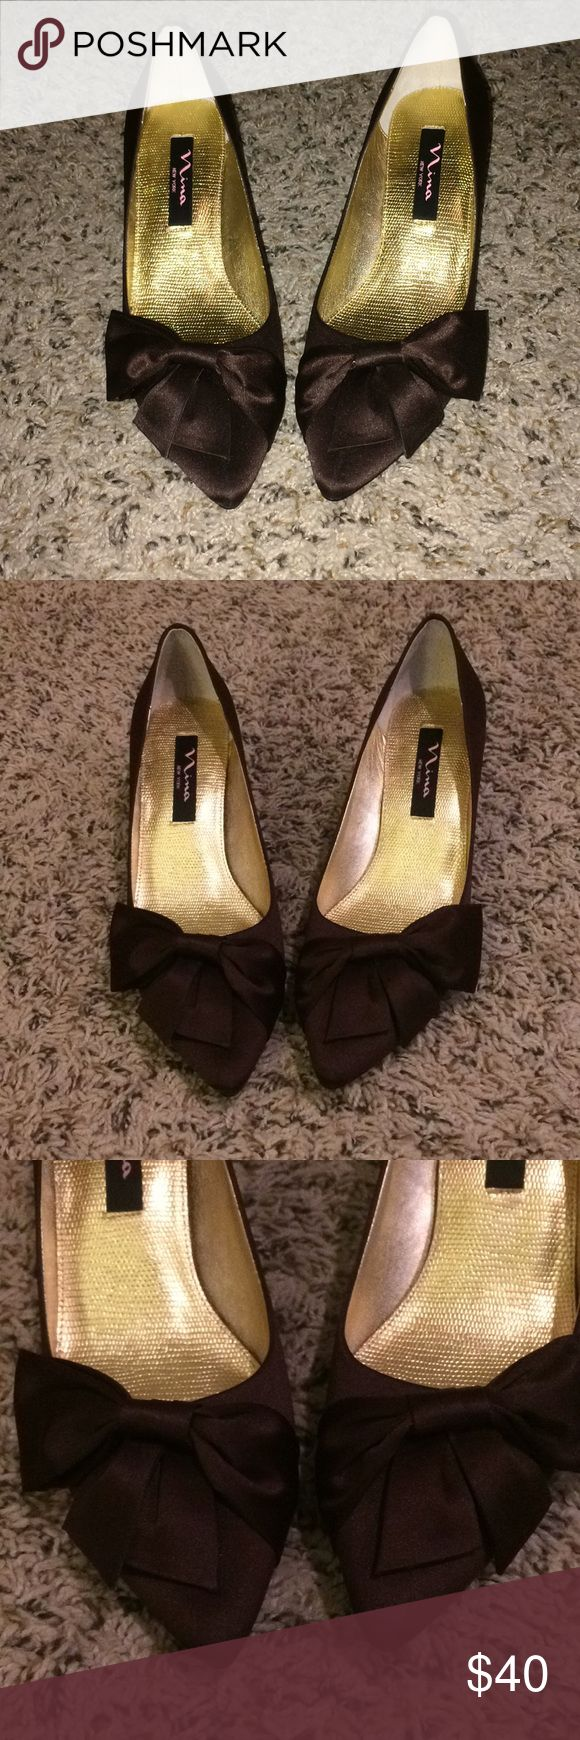 NEW Nina Paladin Chocolate Kitten Heels 7.5 Never worn, perfect condition! Kitten heel with bow detail and pointed toe Chocolate brown Comes with dust bag but no box 7.5 True to size Nina Shoes Heels